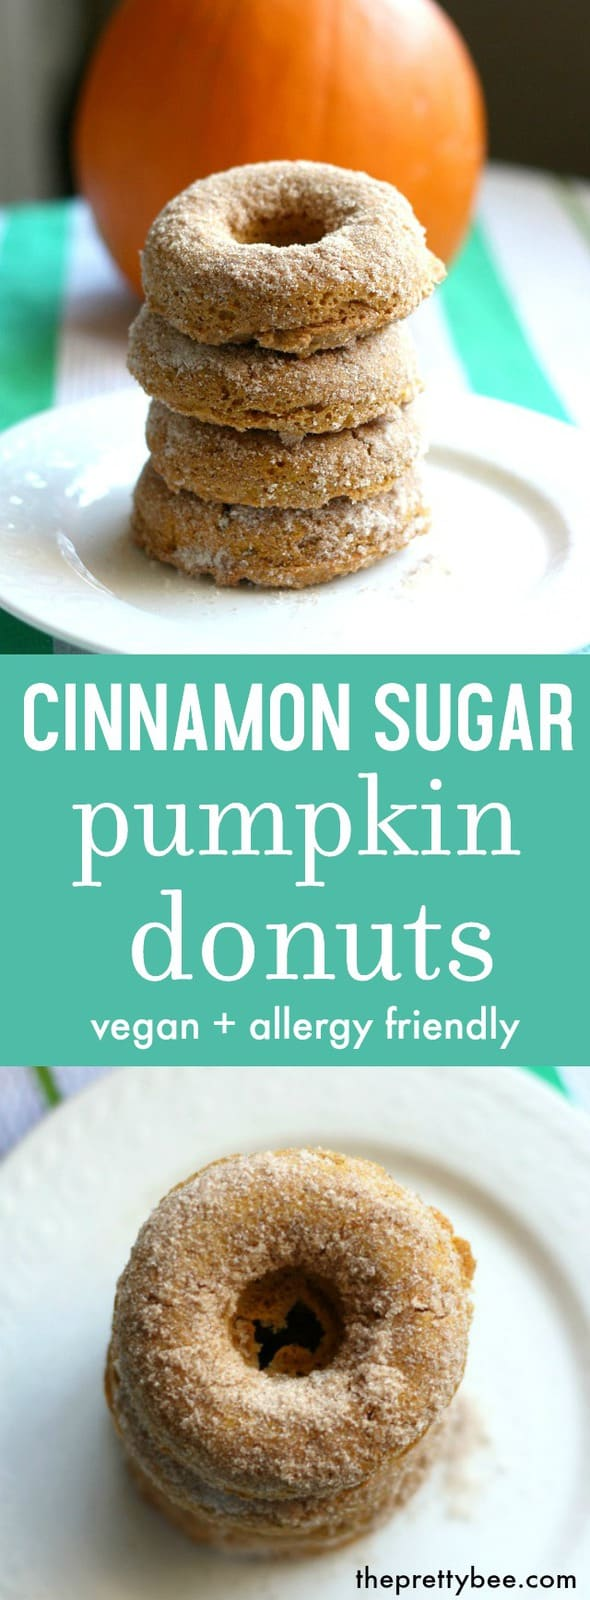 Soft and delicious cinnamon sugar pumpkin donuts are the perfect treat to enjoy with hot cider!